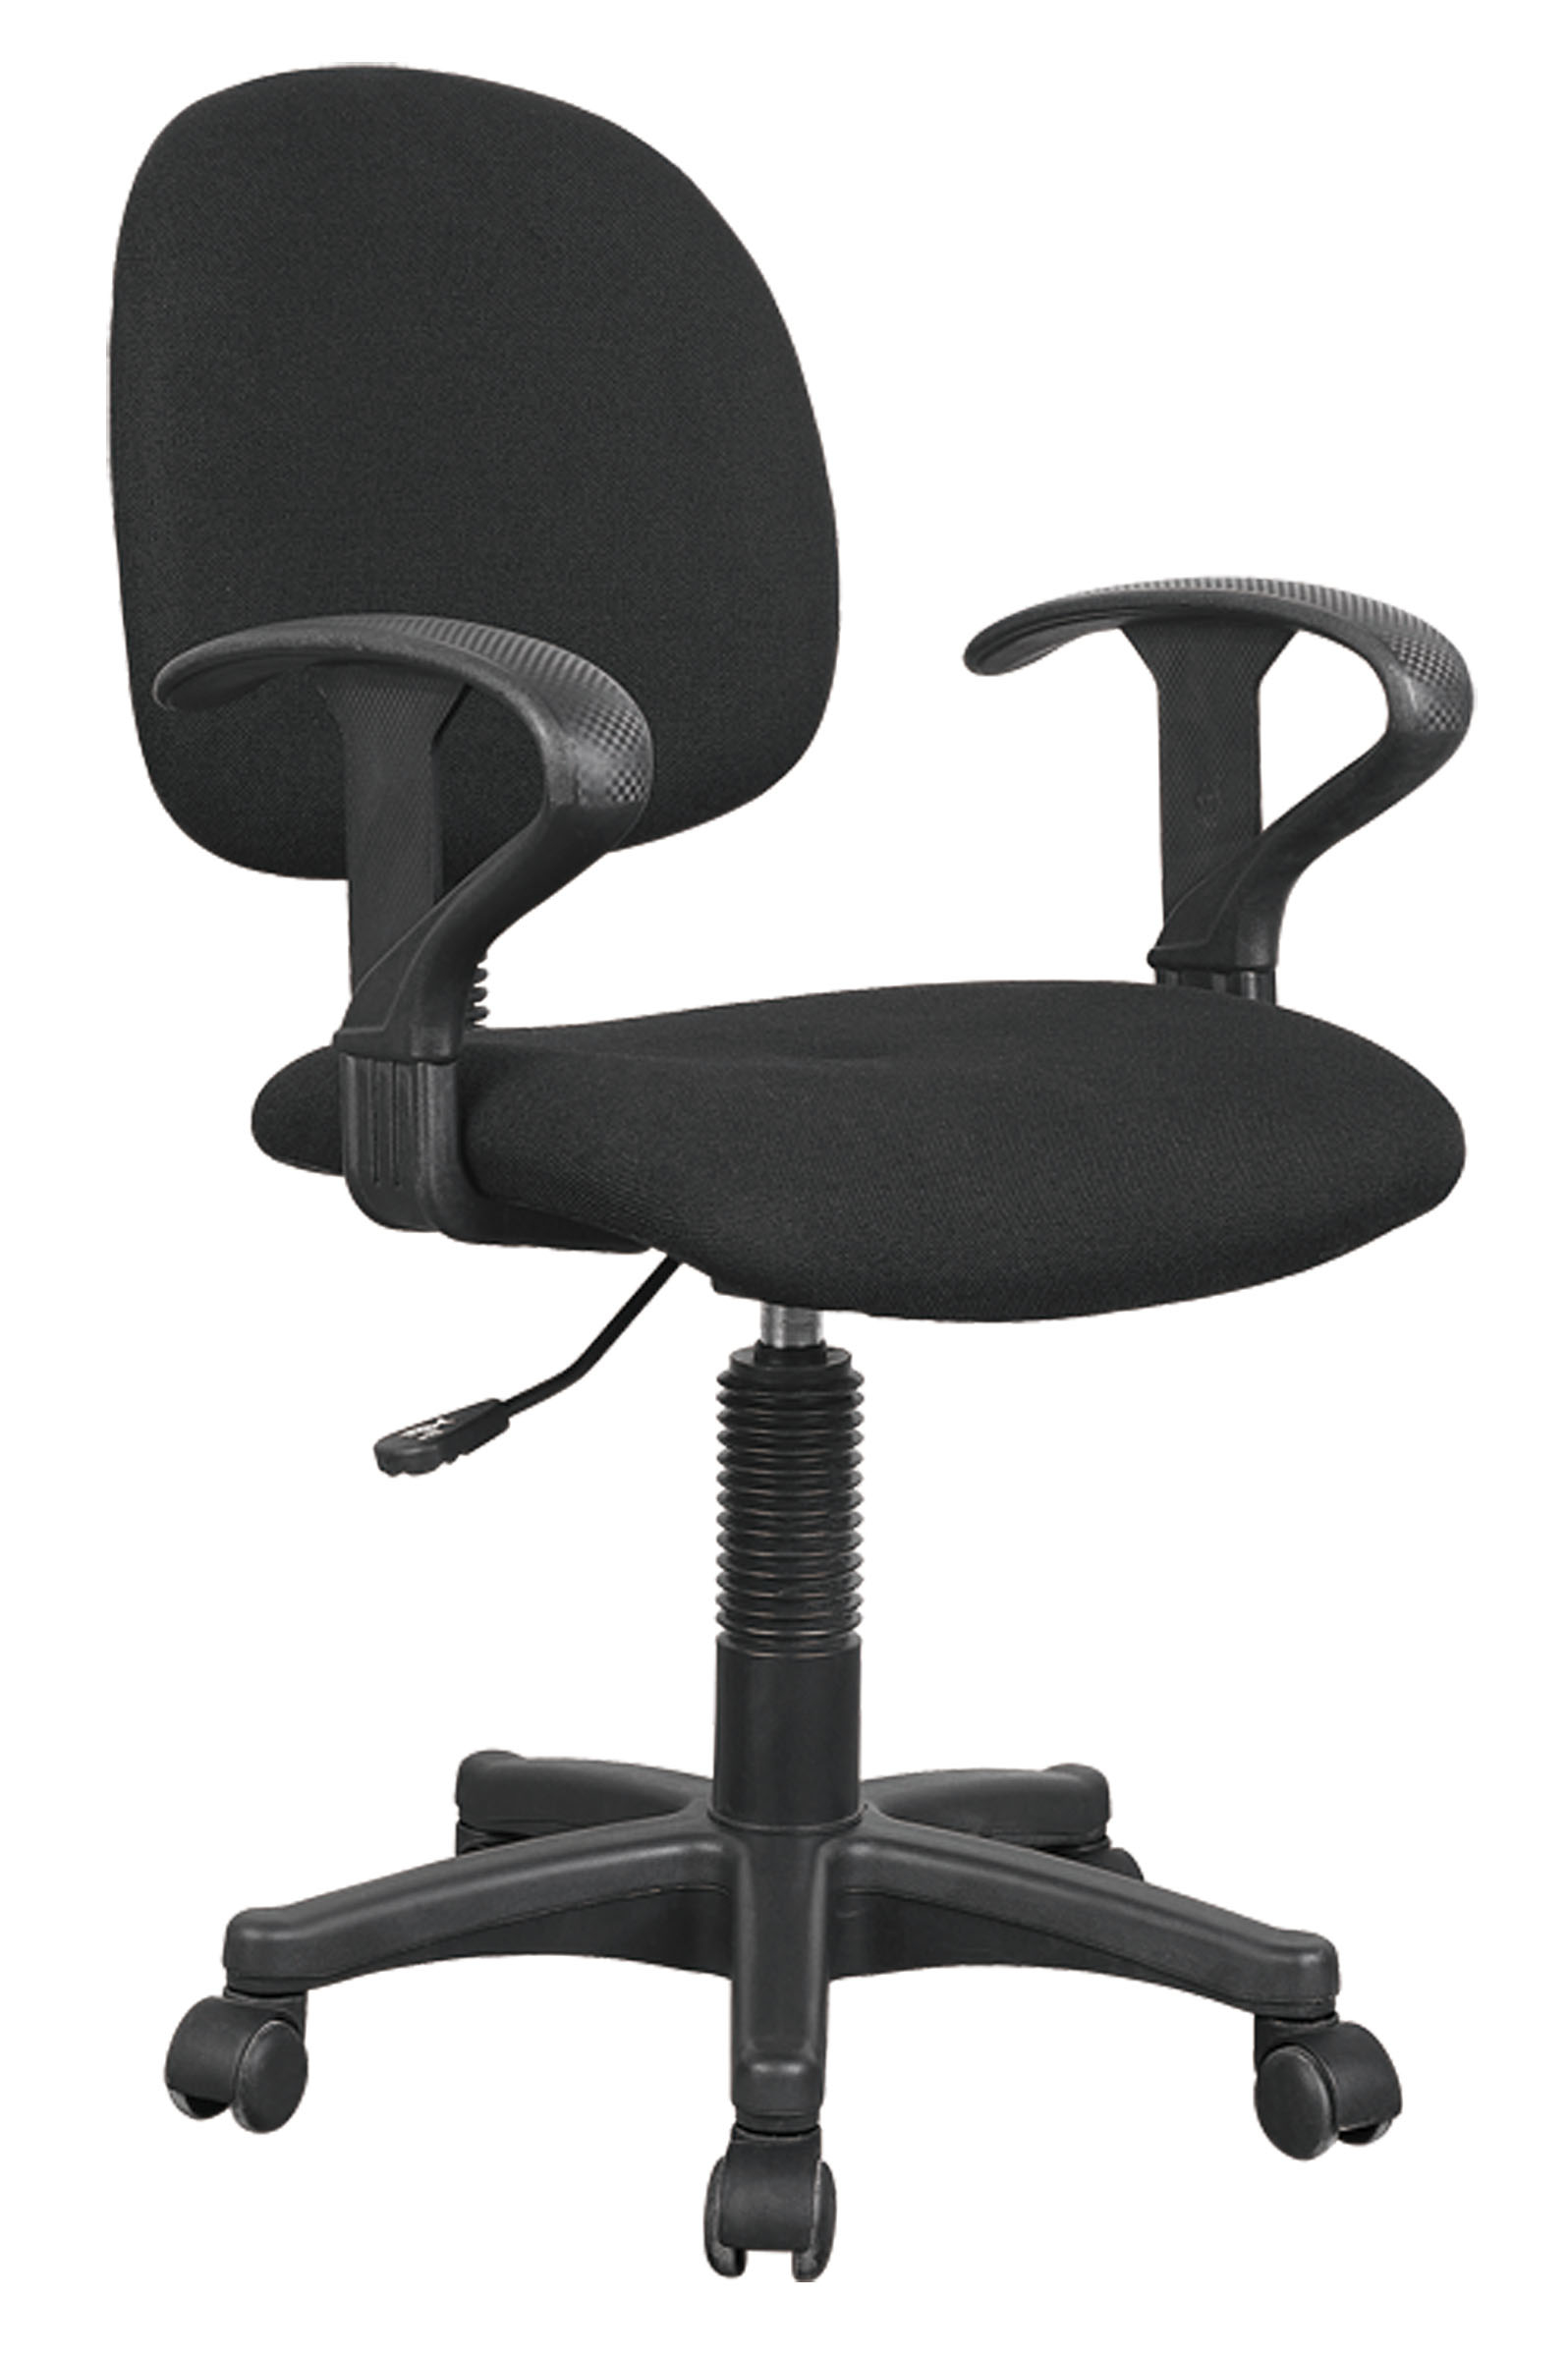 Remi Office Chair With Pneumatic Lift, Black